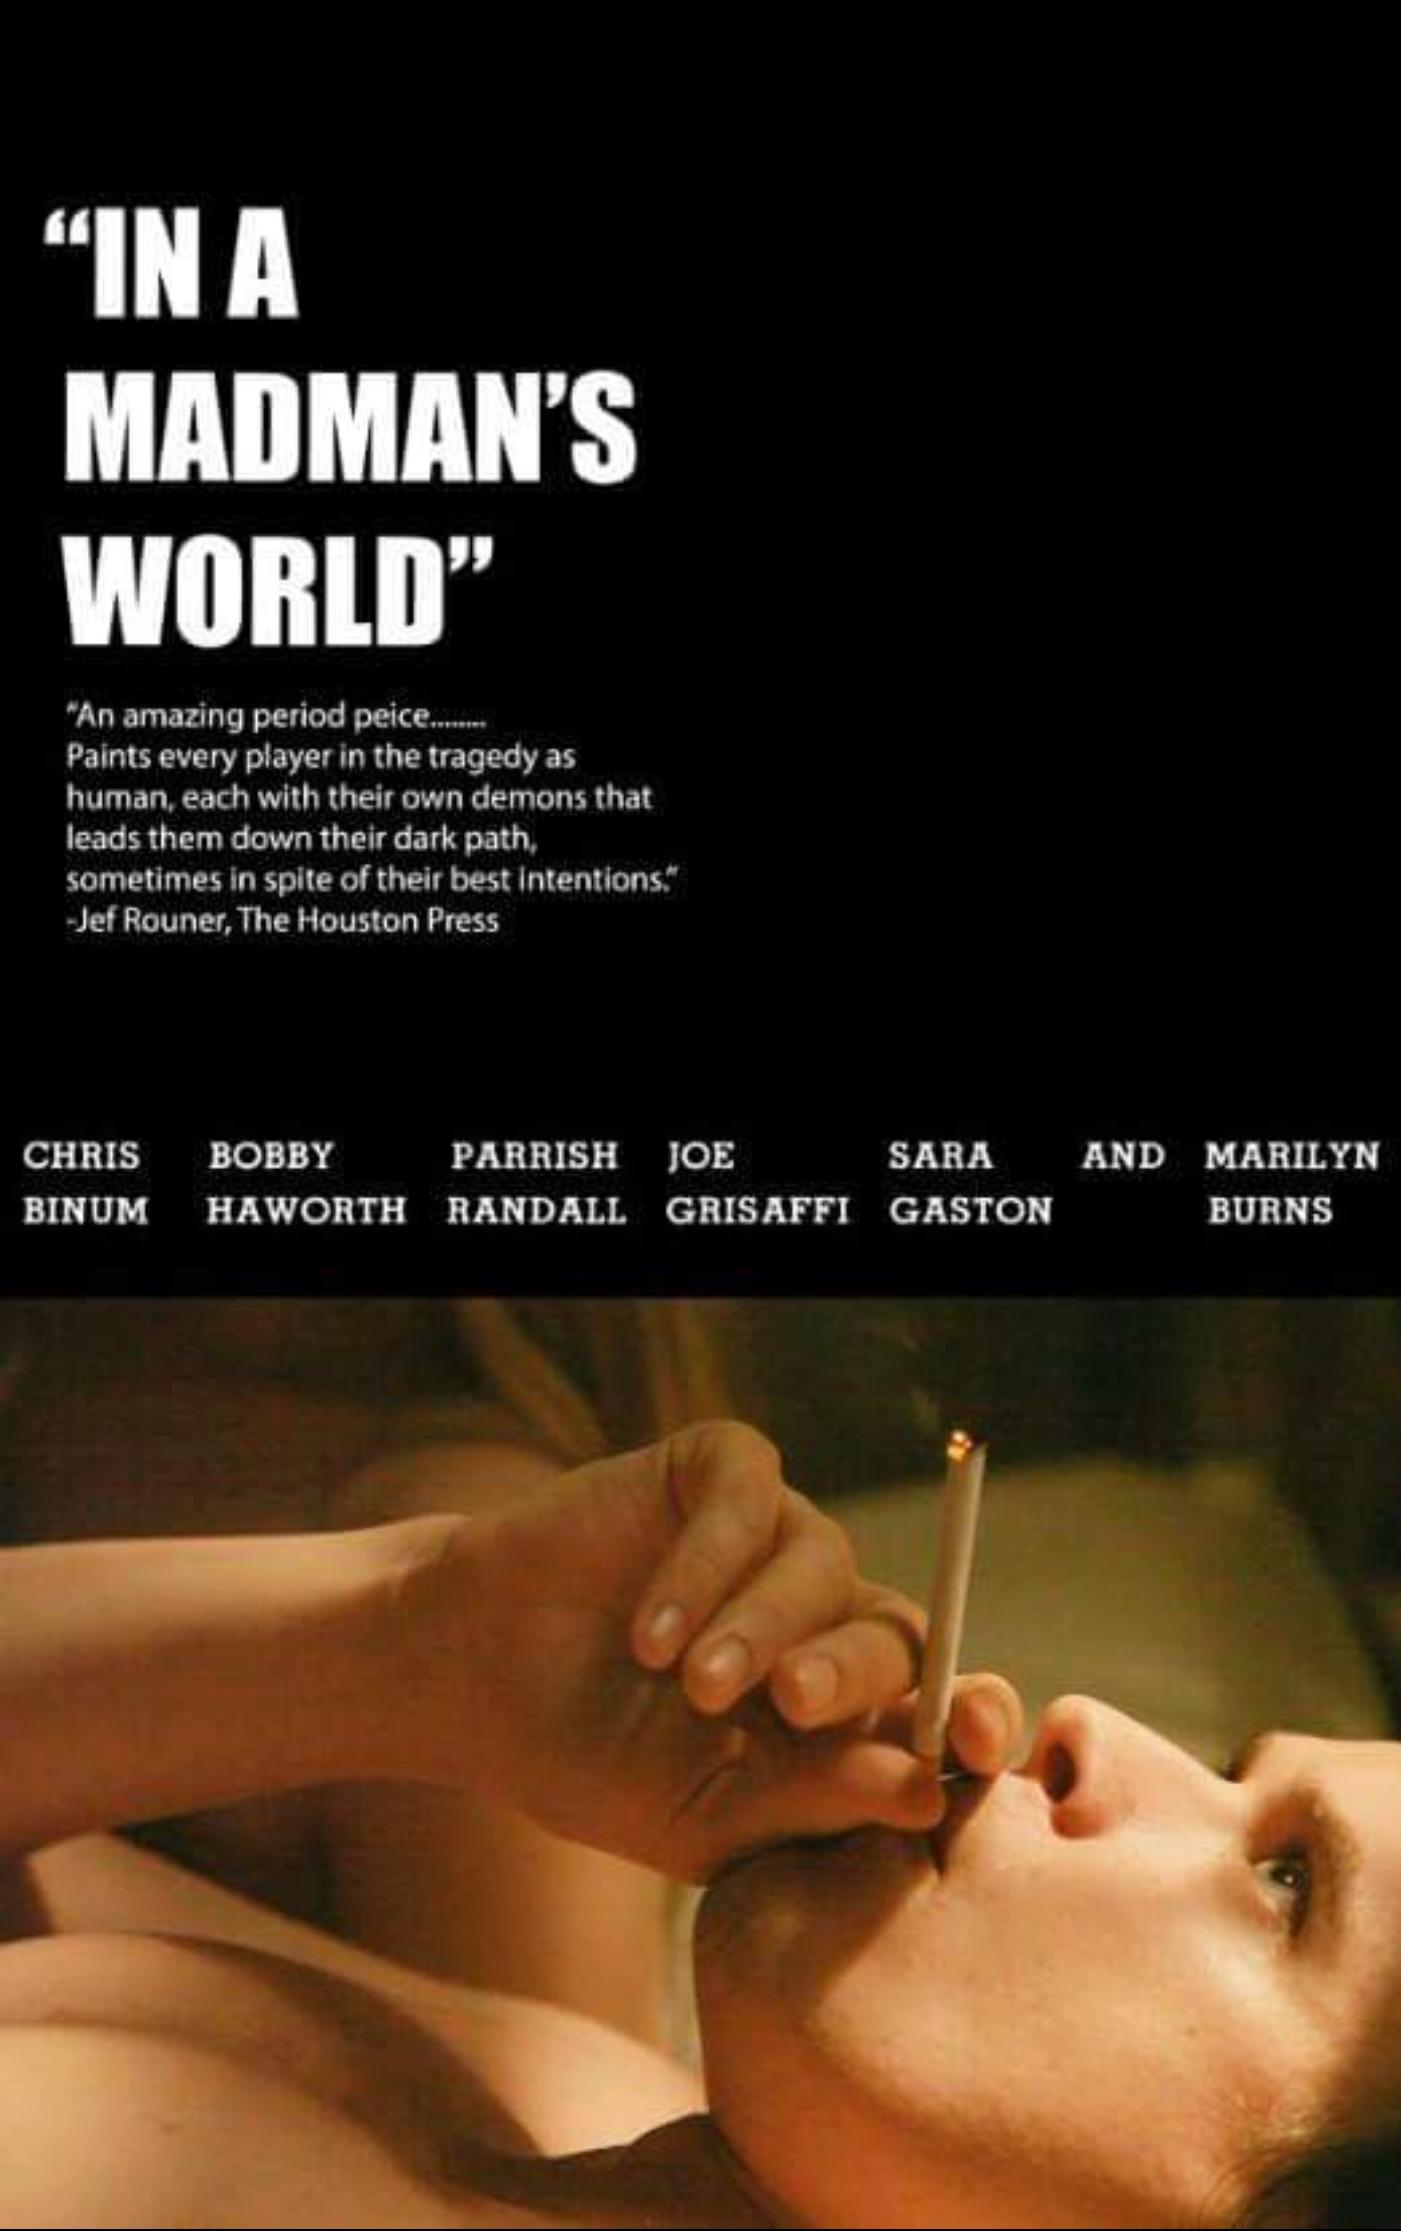 In a Madman's World - IMDb